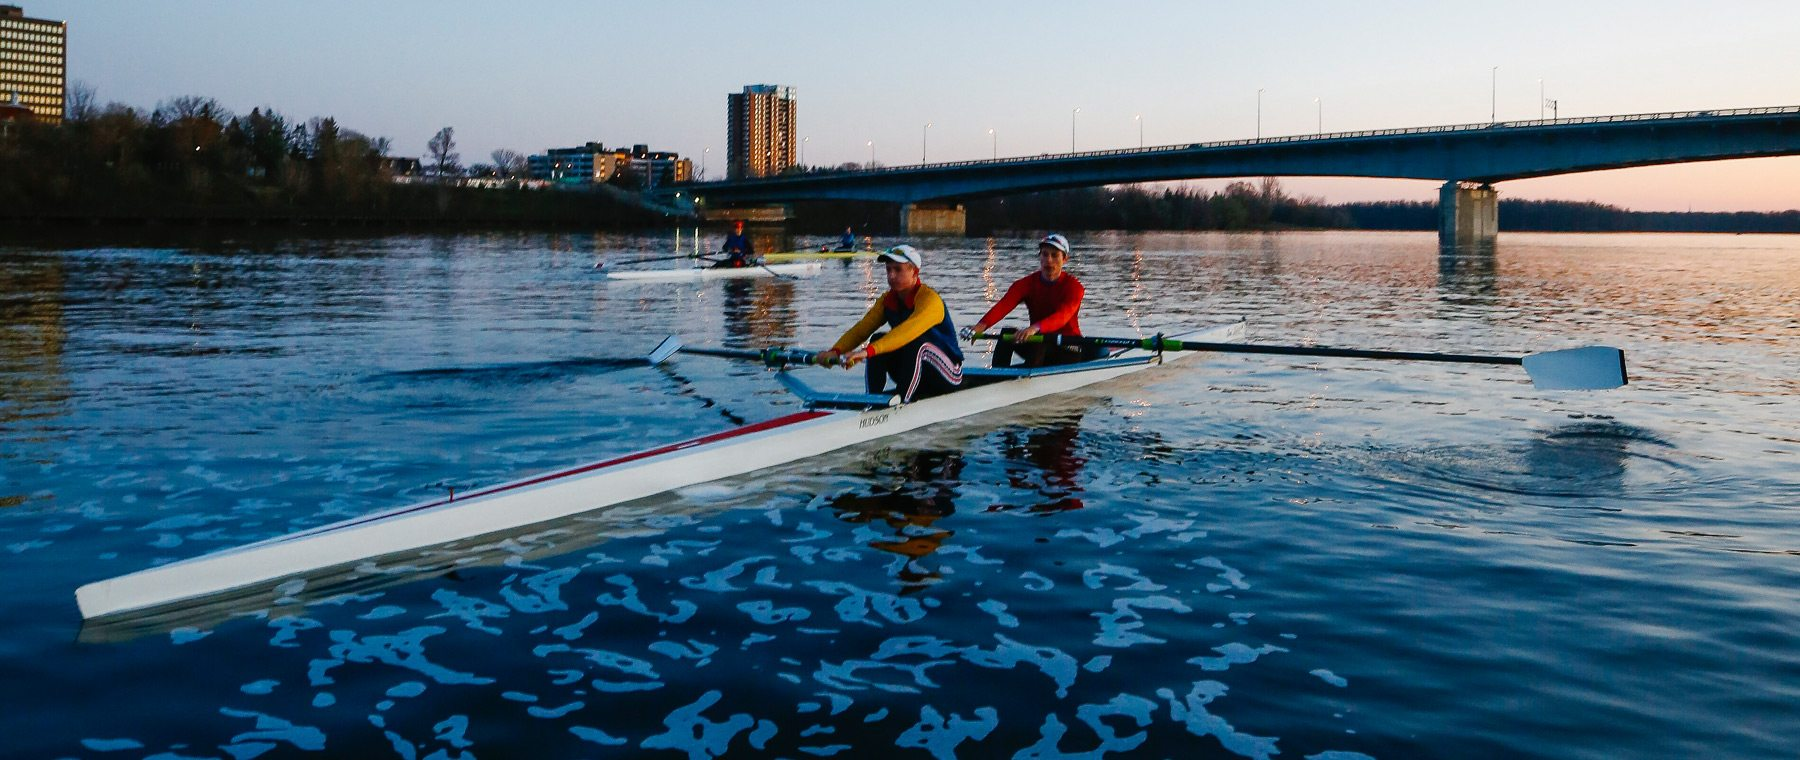 The Ottawa Rowing Club leaves the competition in its wake